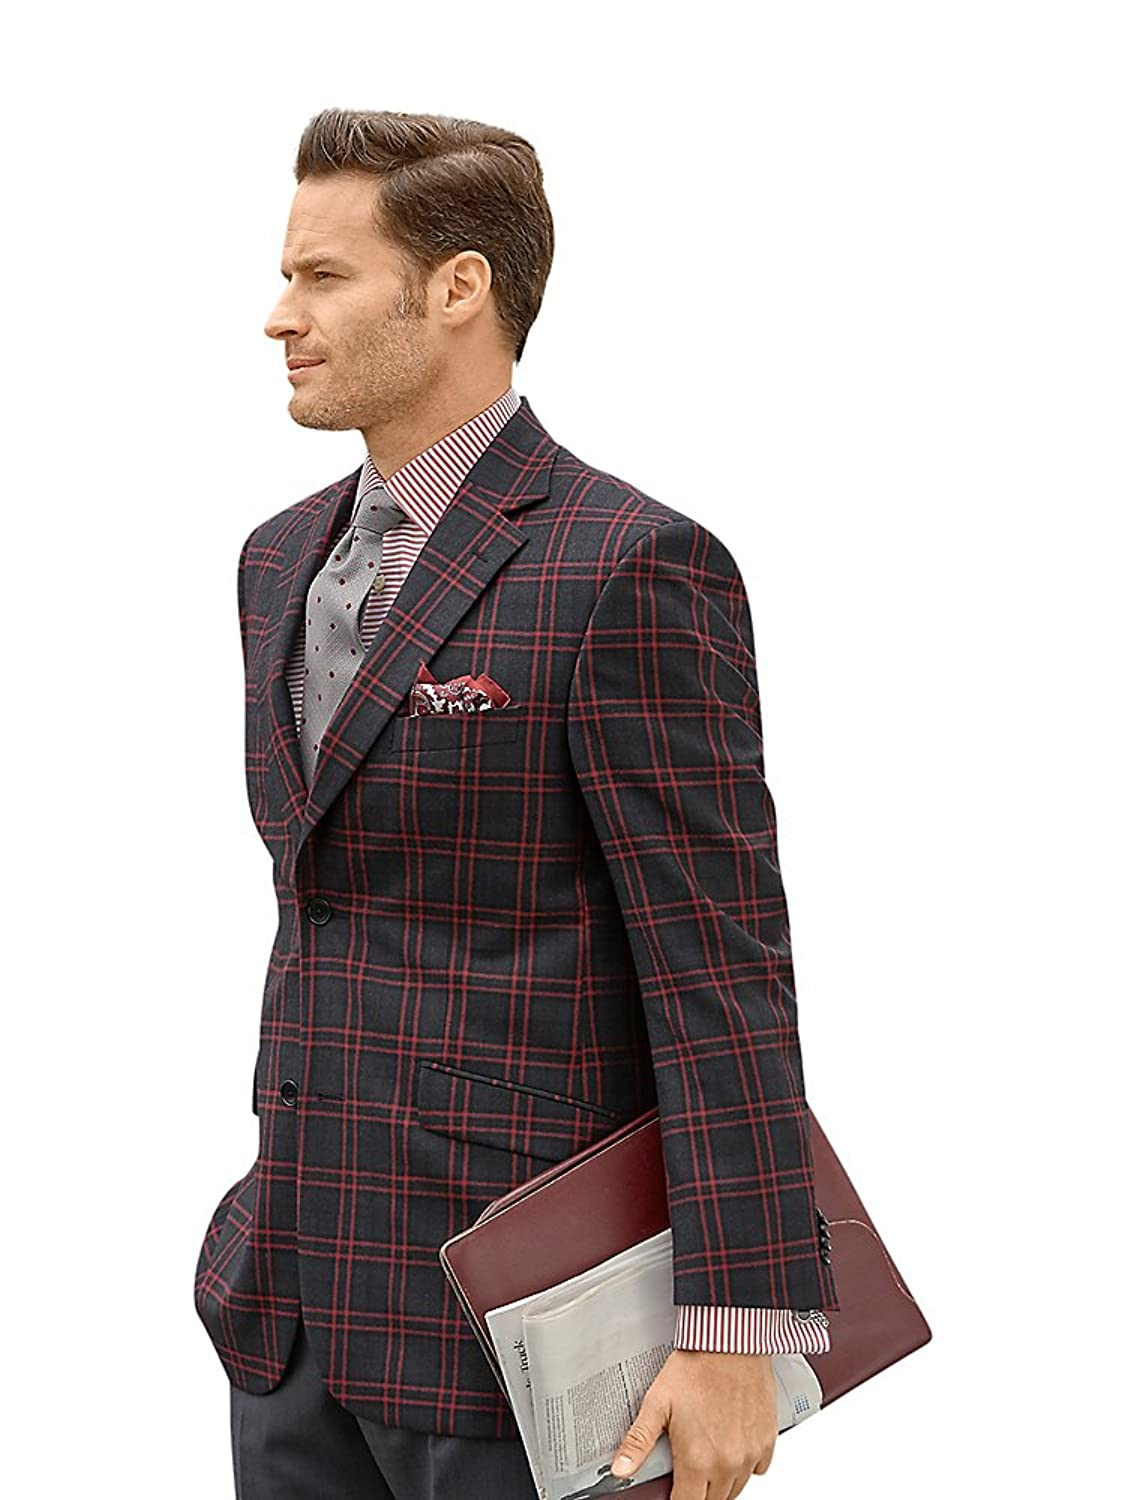 Men's Vintage Style Coats and Jackets Paul Fredrick Mens Wool Plaid Sport Coat $229.98 AT vintagedancer.com